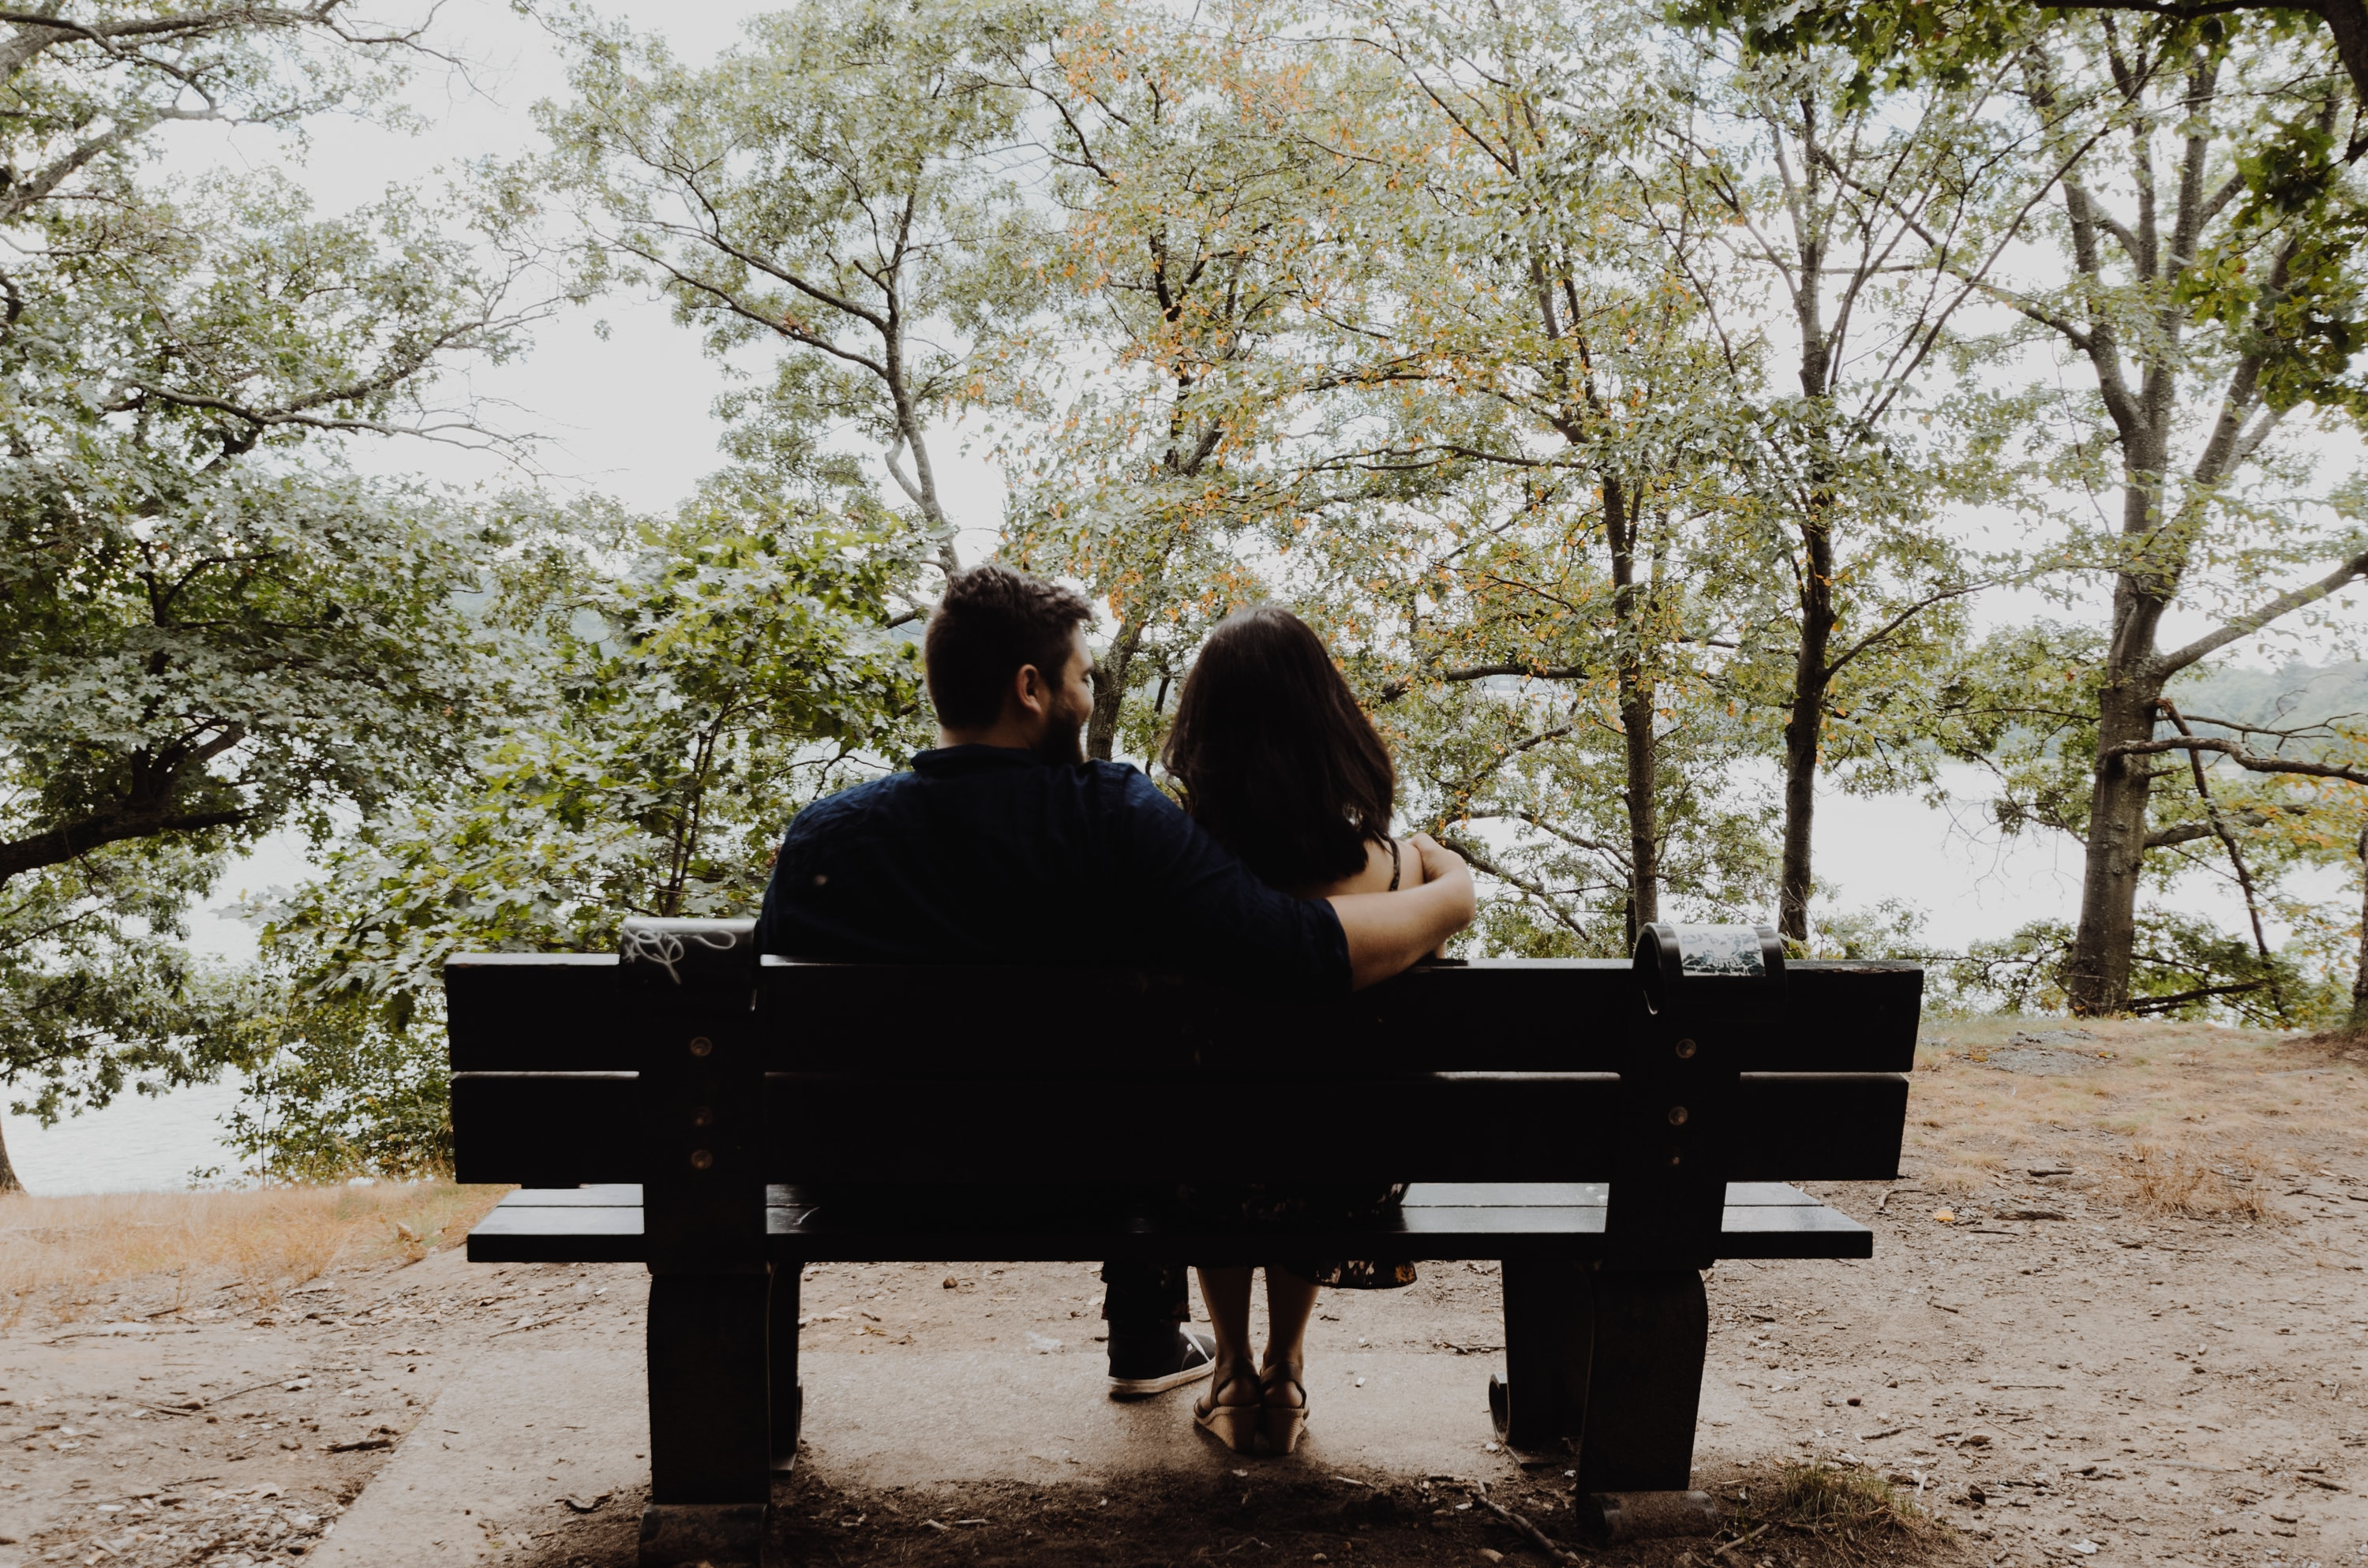 man looking to woman sitting on black wooden bench in front of tall trees during daytime